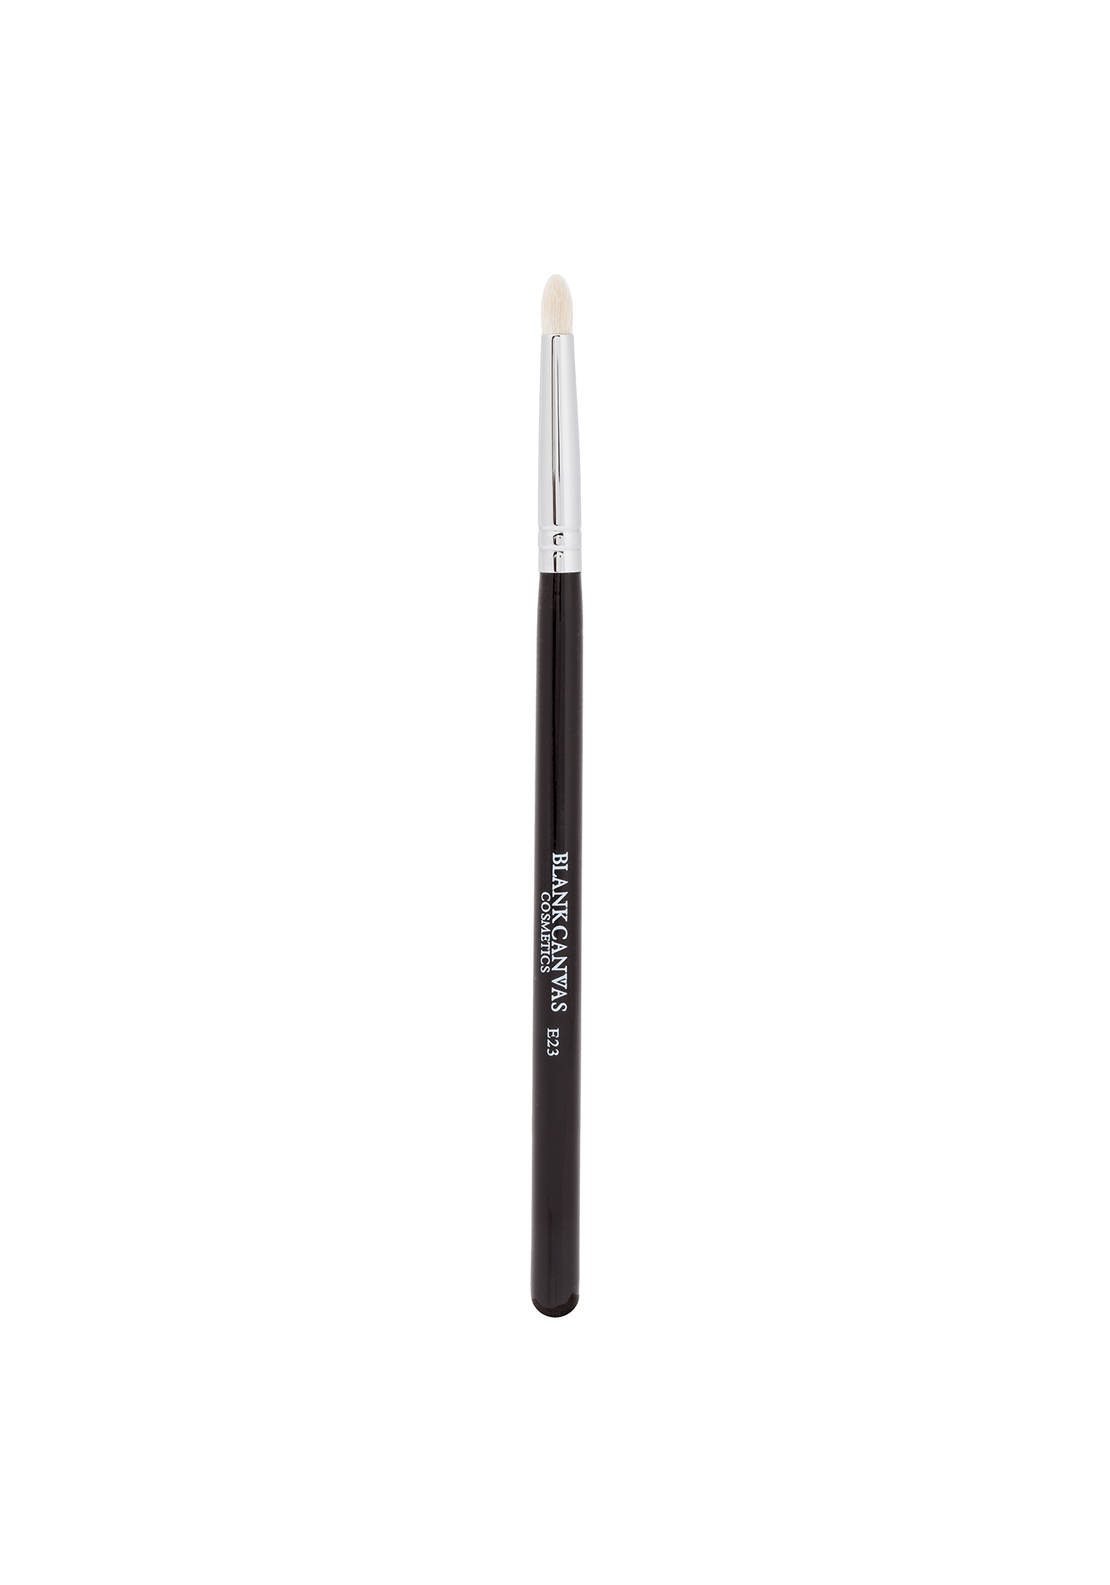 Blank Canvas Cosmetics E23 Eye Pencil Brush